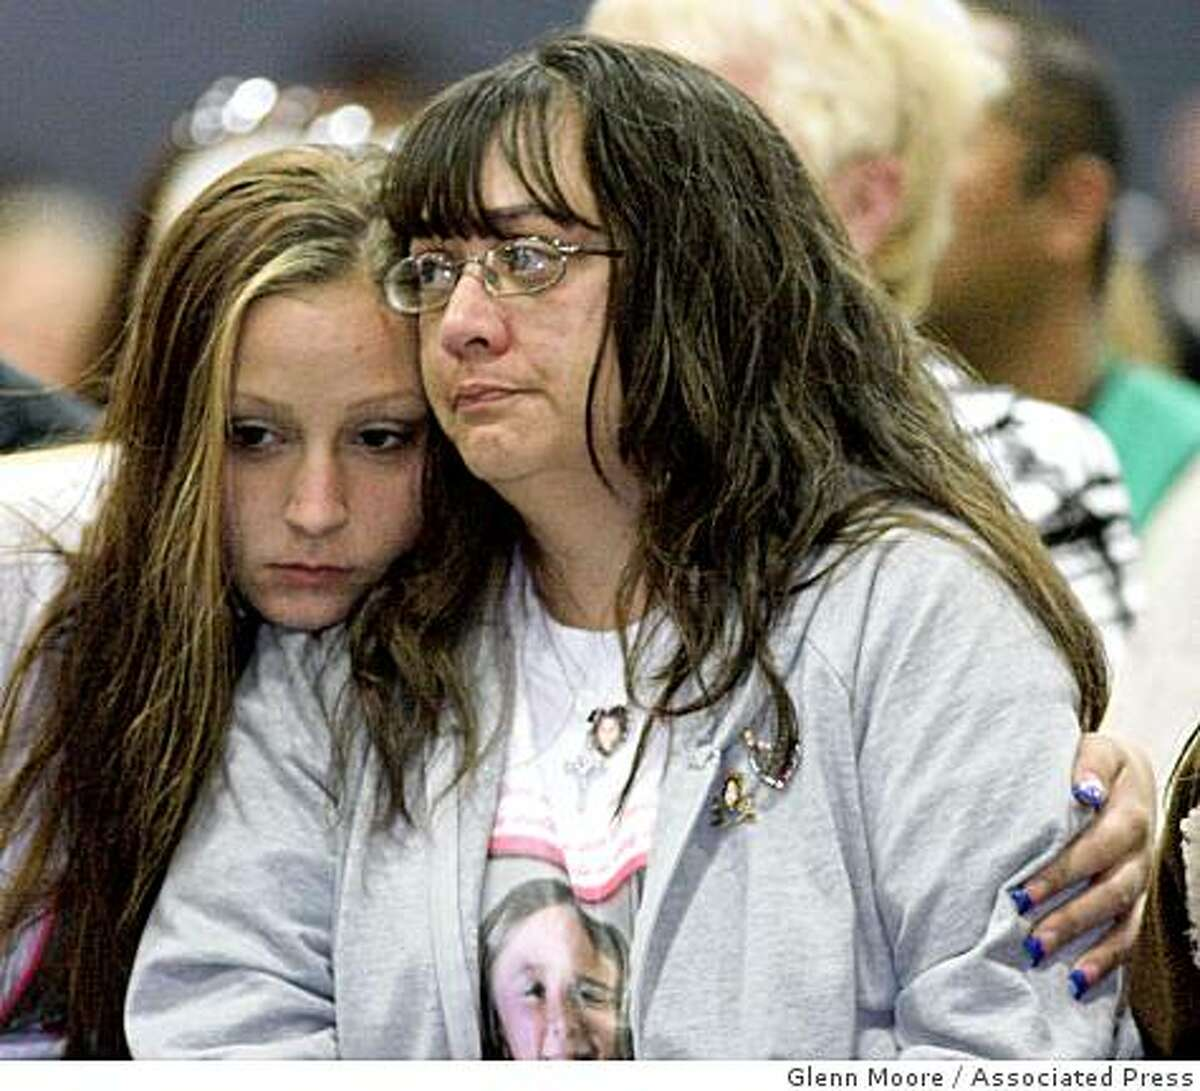 Maria Chavez, right, is embraced by her daughter Miranda during a memorial service for her slain daughter Sandra Cantu on Thursday in Tracy.